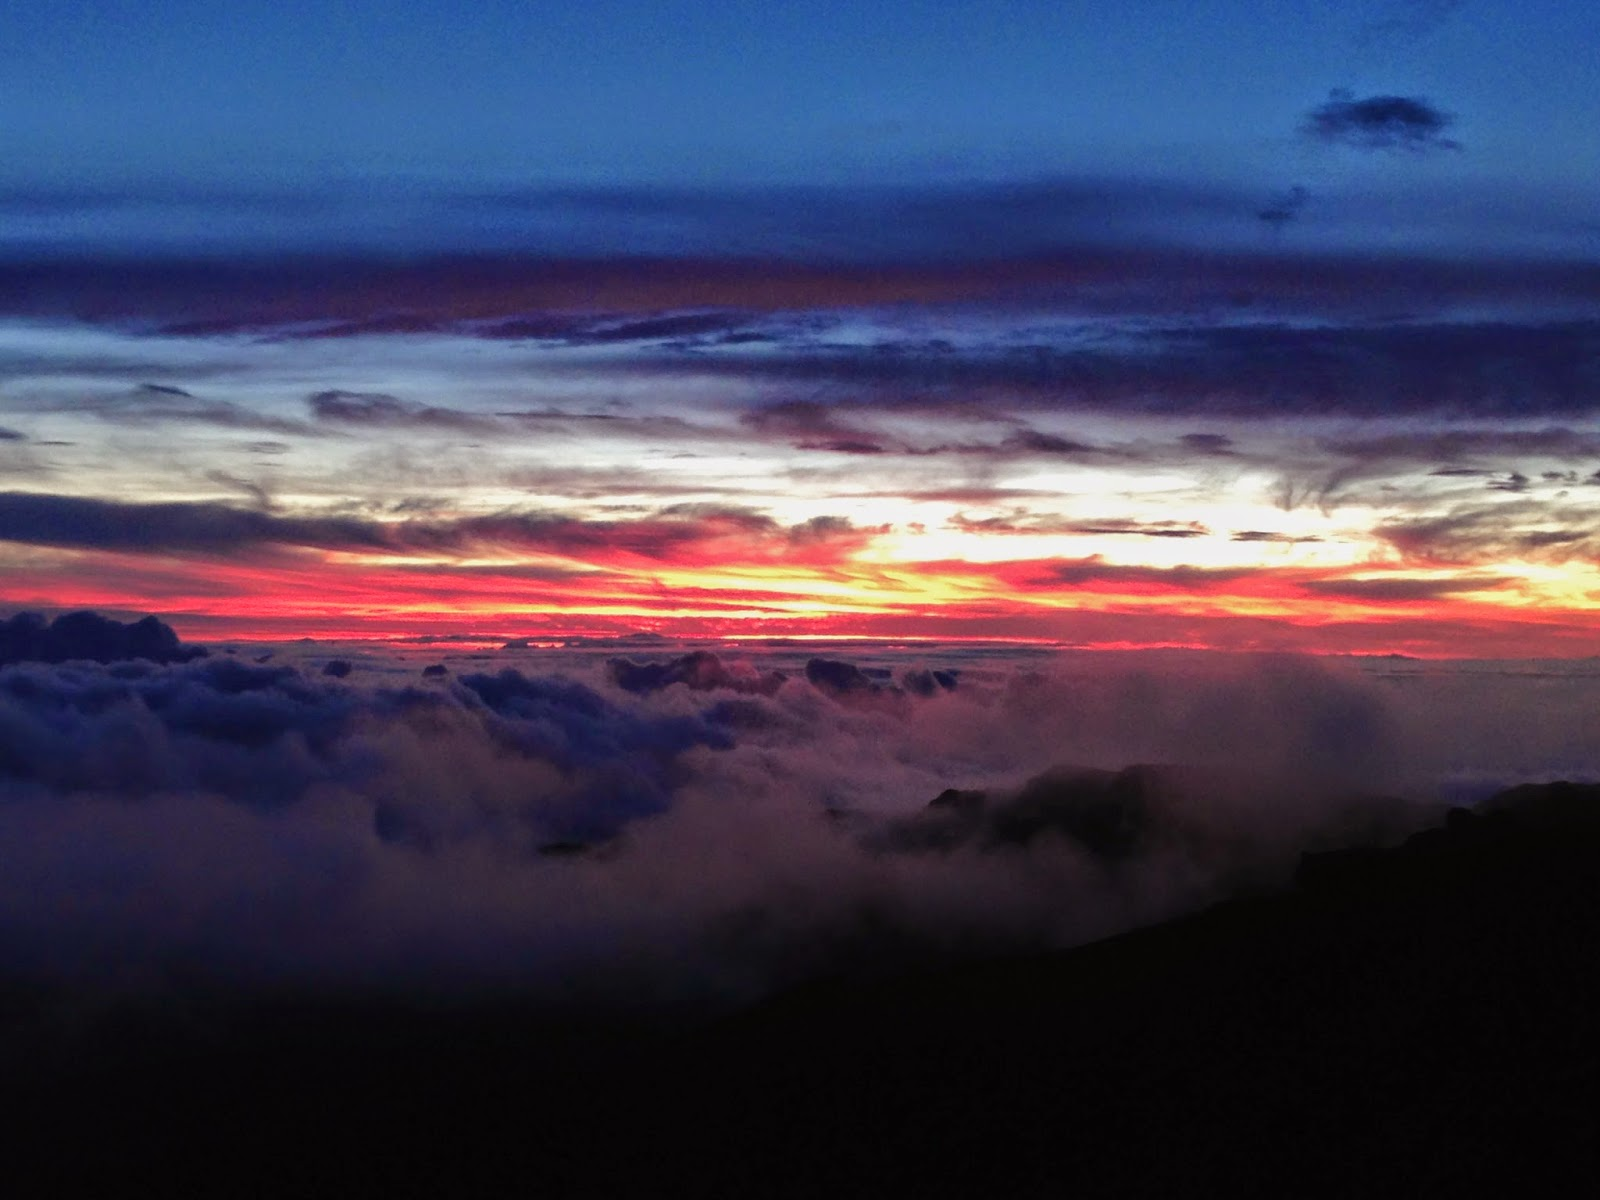 sun rising over Haleakala Crater in Maui